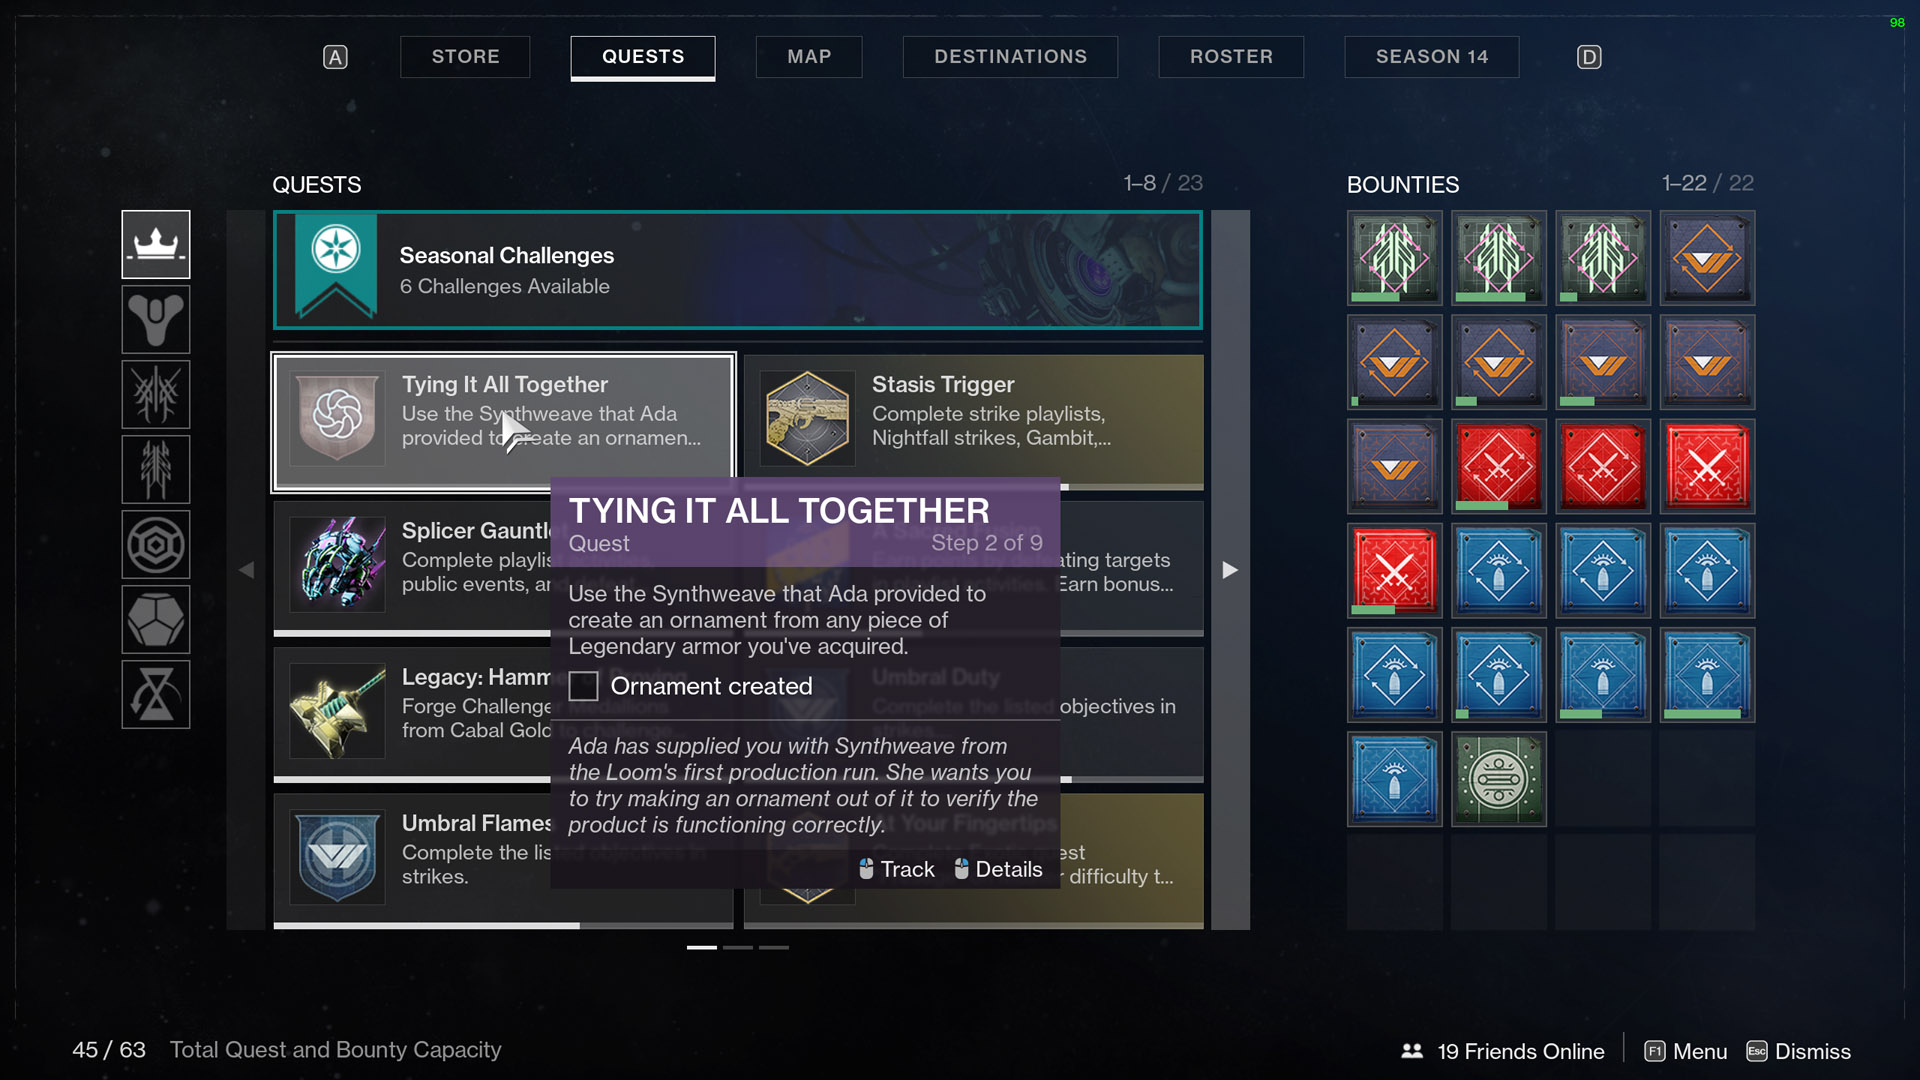 destiny 2 tying it all together create an ornament